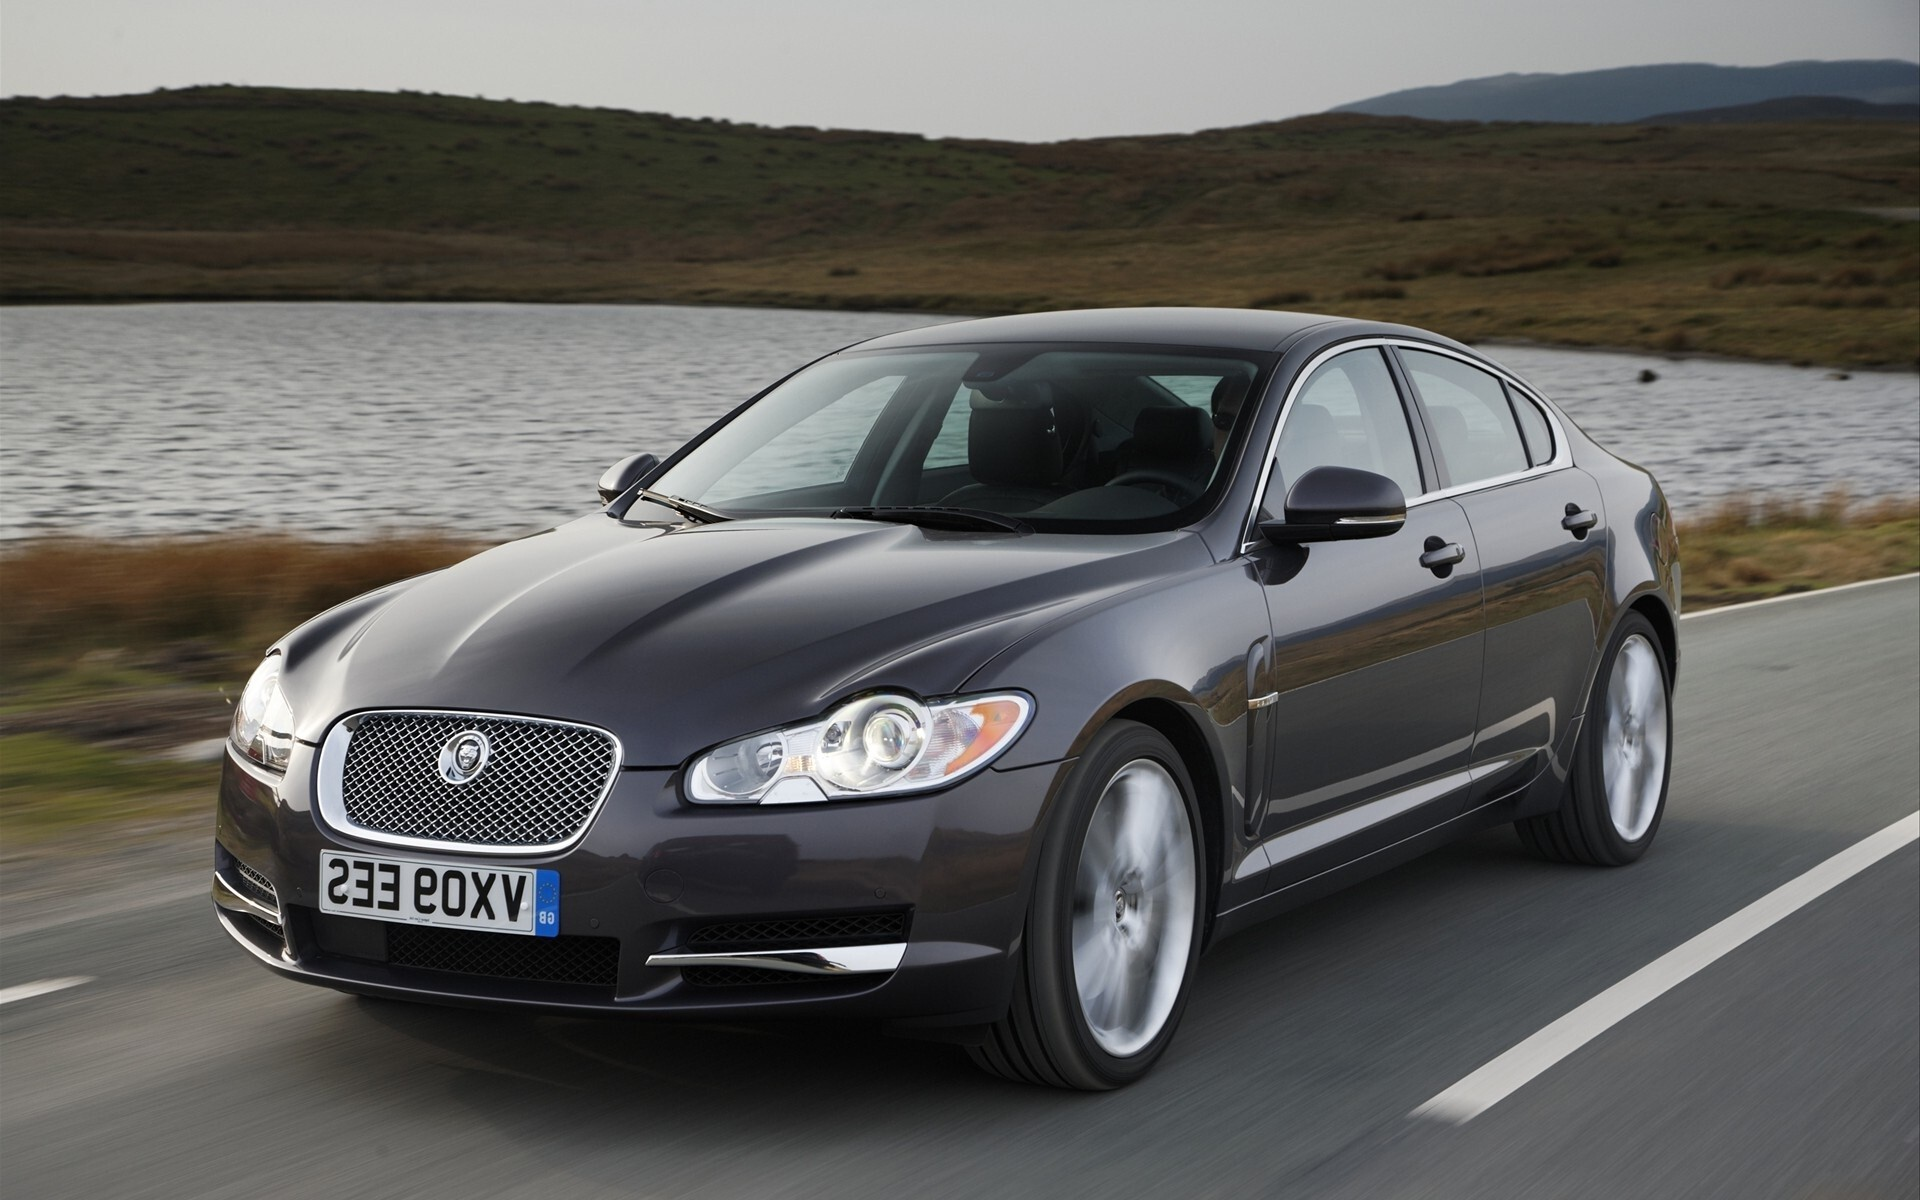 Luxury New Jaguar Car HD Wallpaper | HD Wallpapers